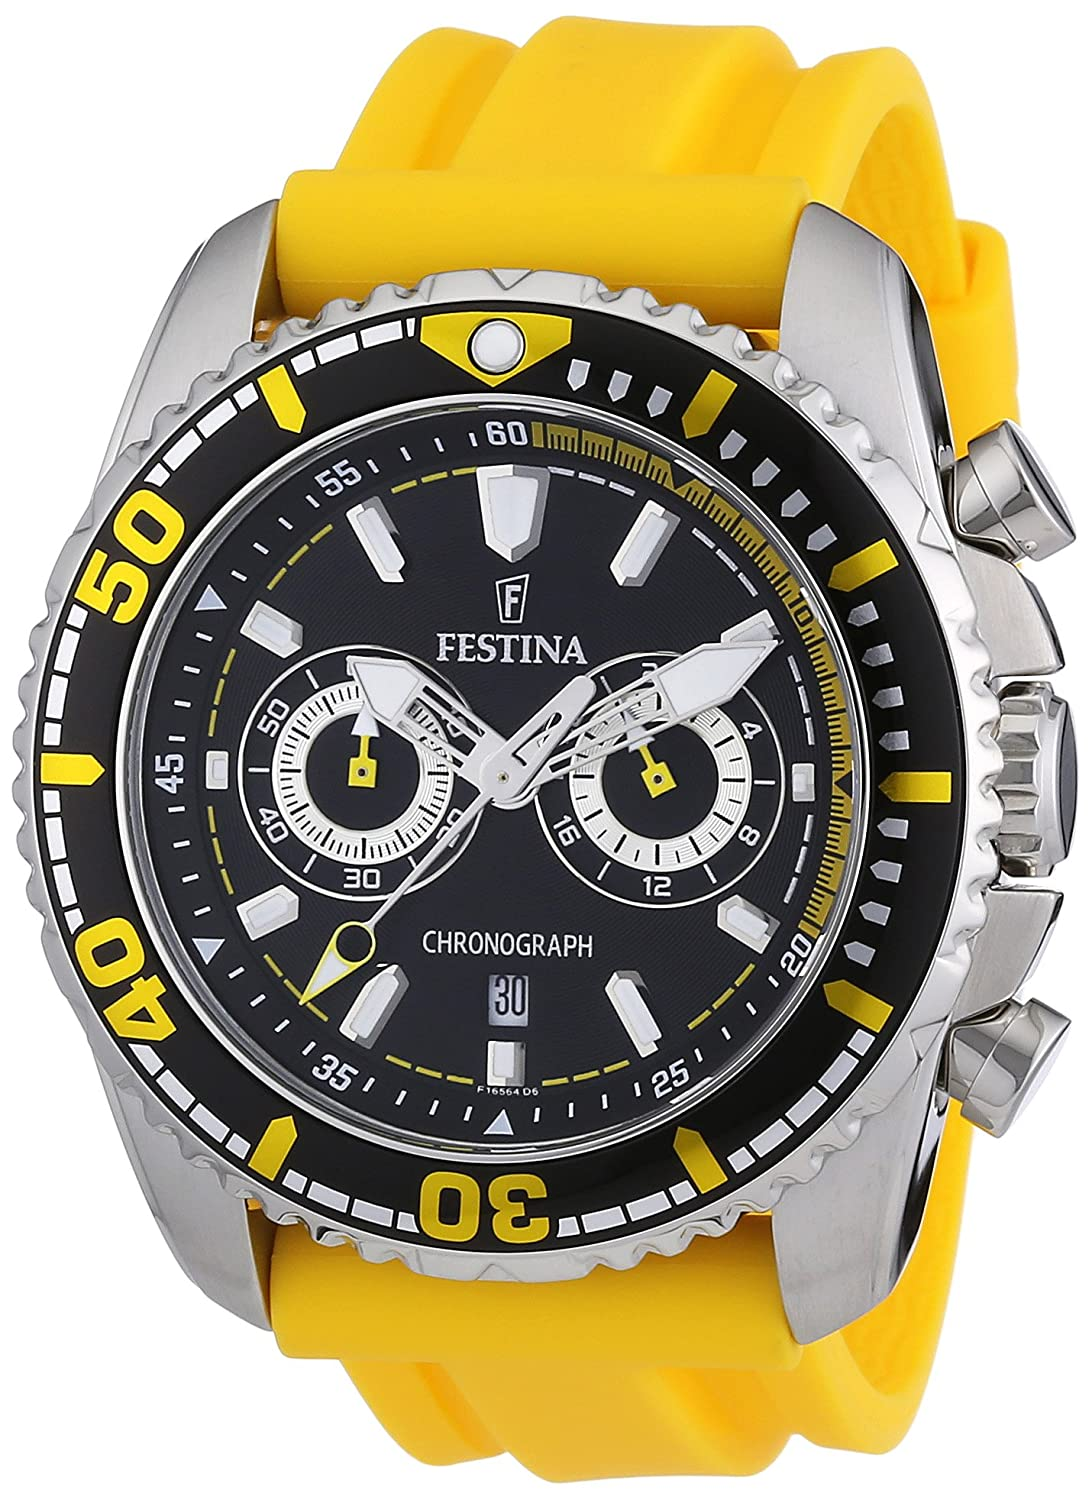 Amazon.com: Festina Mens Crono F16574/1 Yellow Polyurethane Quartz Watch with Black Dial: Festina: Watches